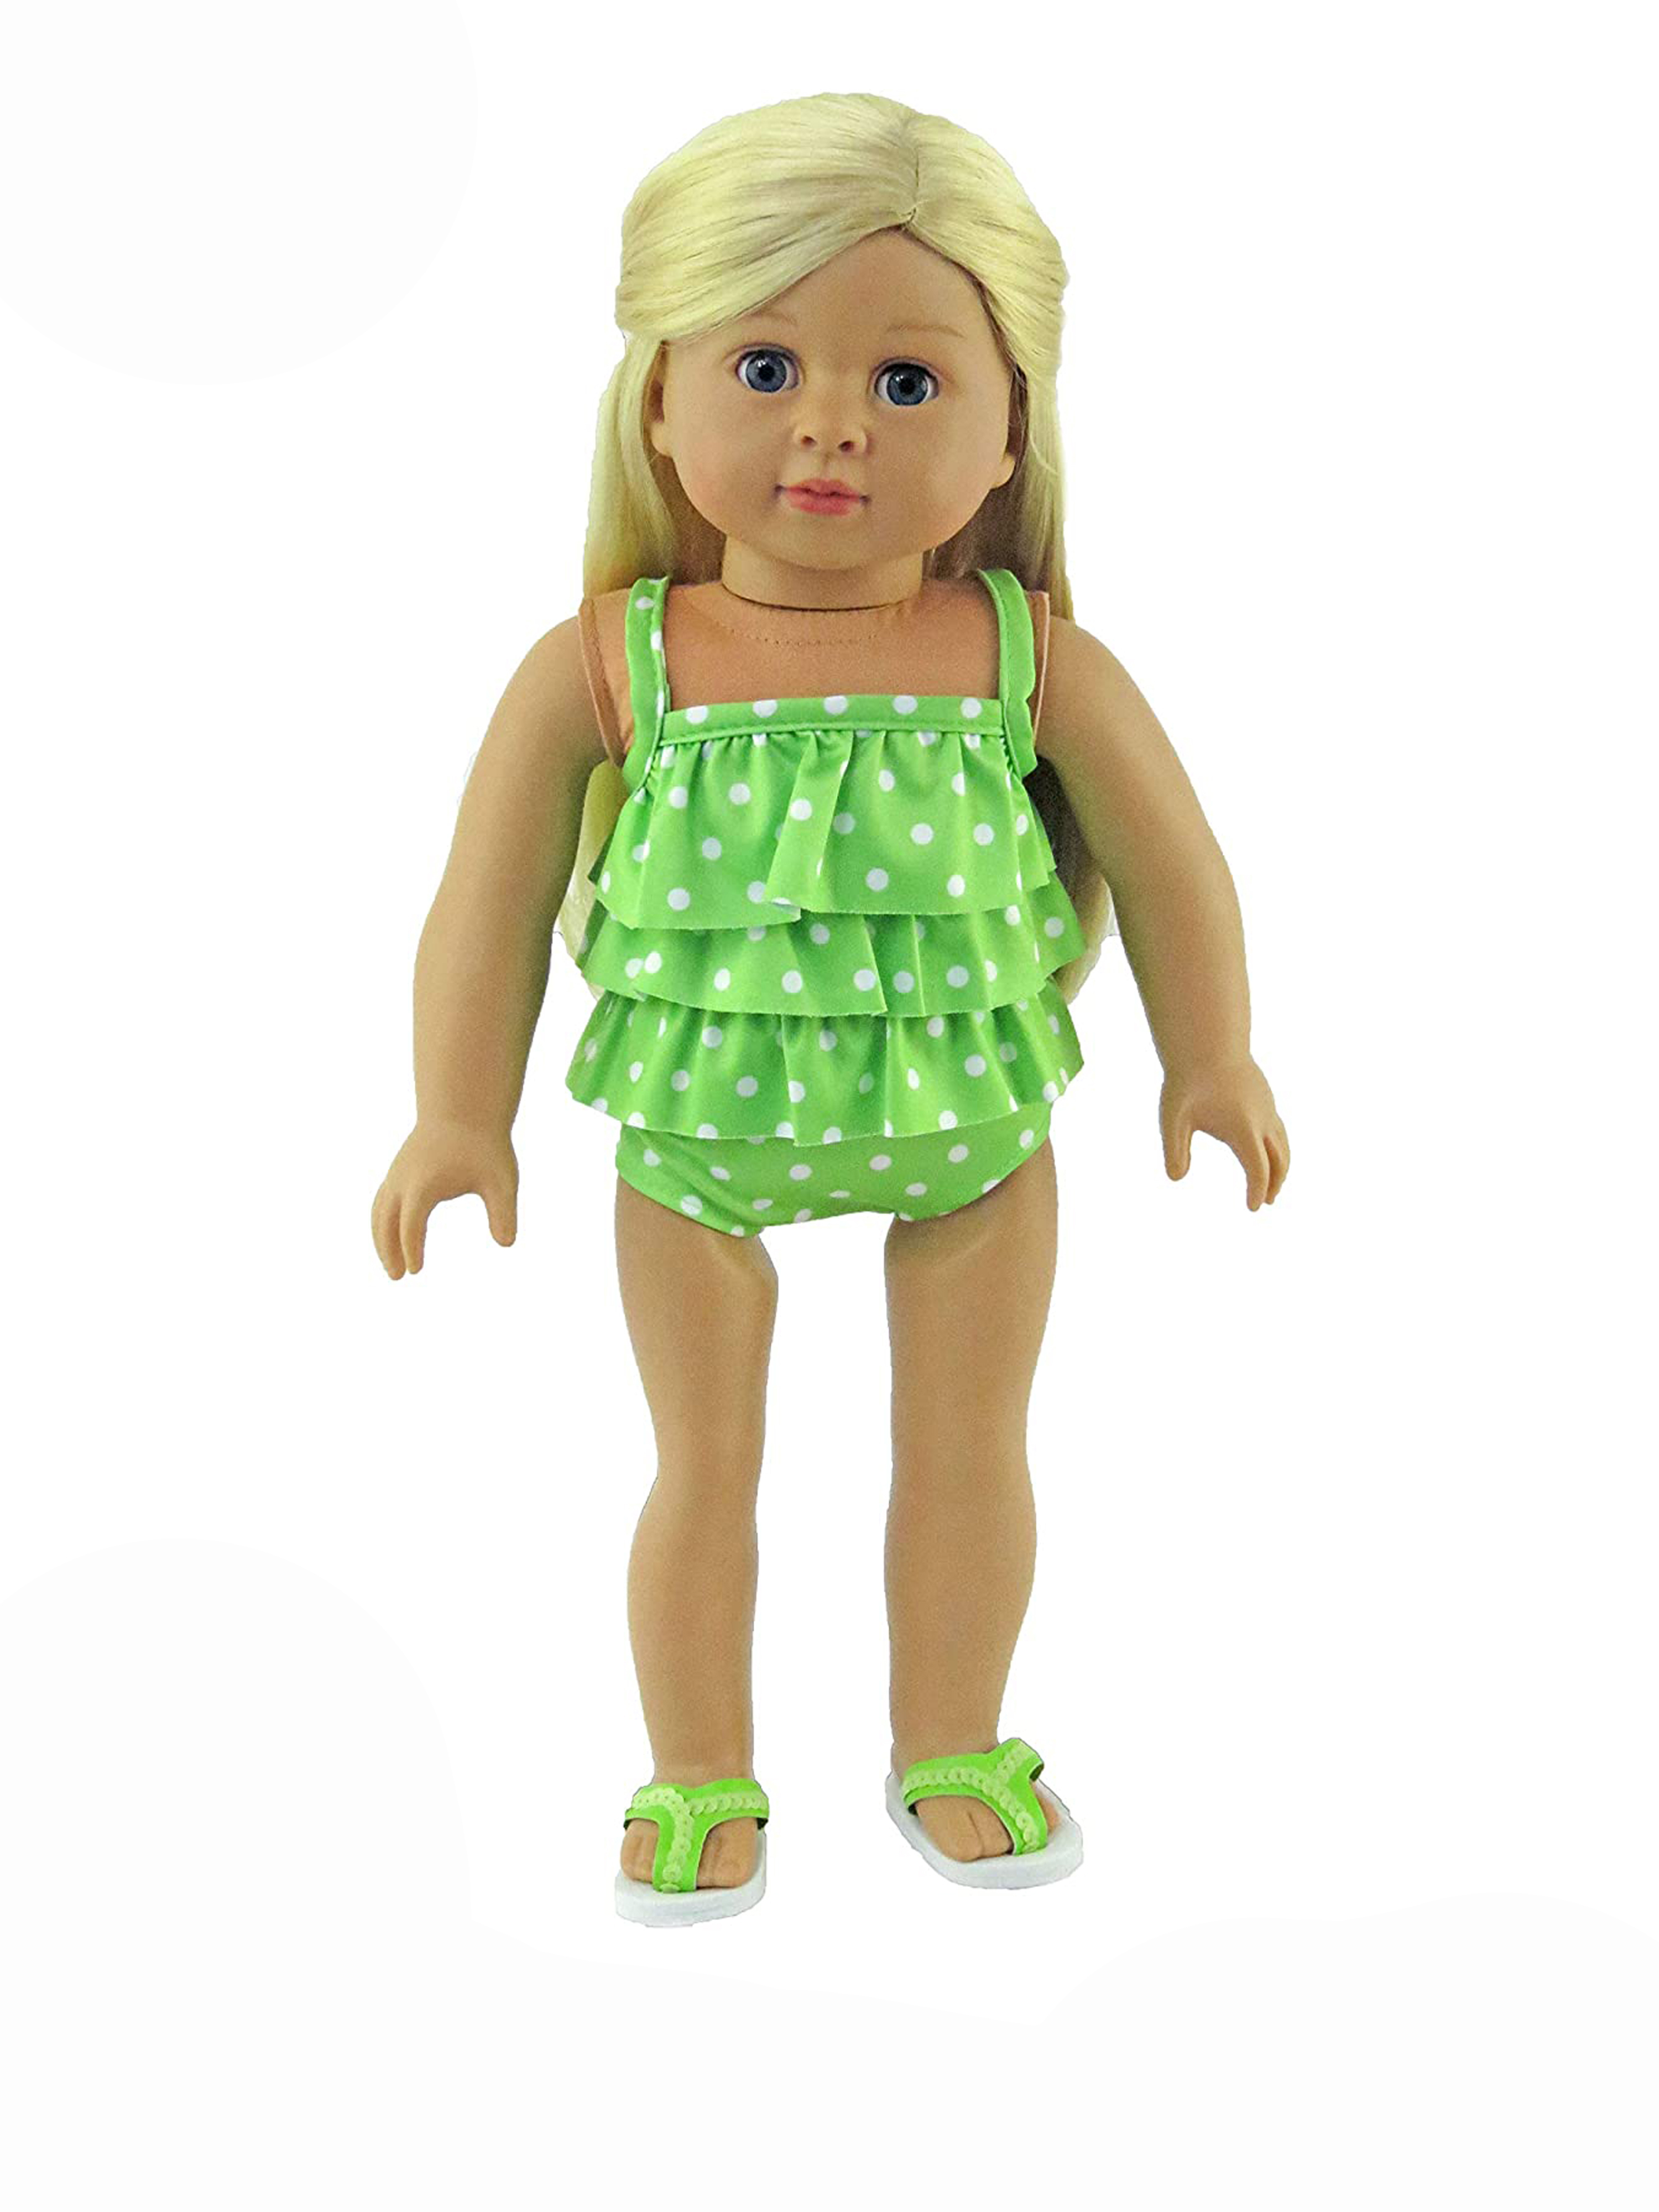 Ruffle Heart Print 1 Piece Swim Suit 18 in Doll Clothes Fits American Girl Dolls